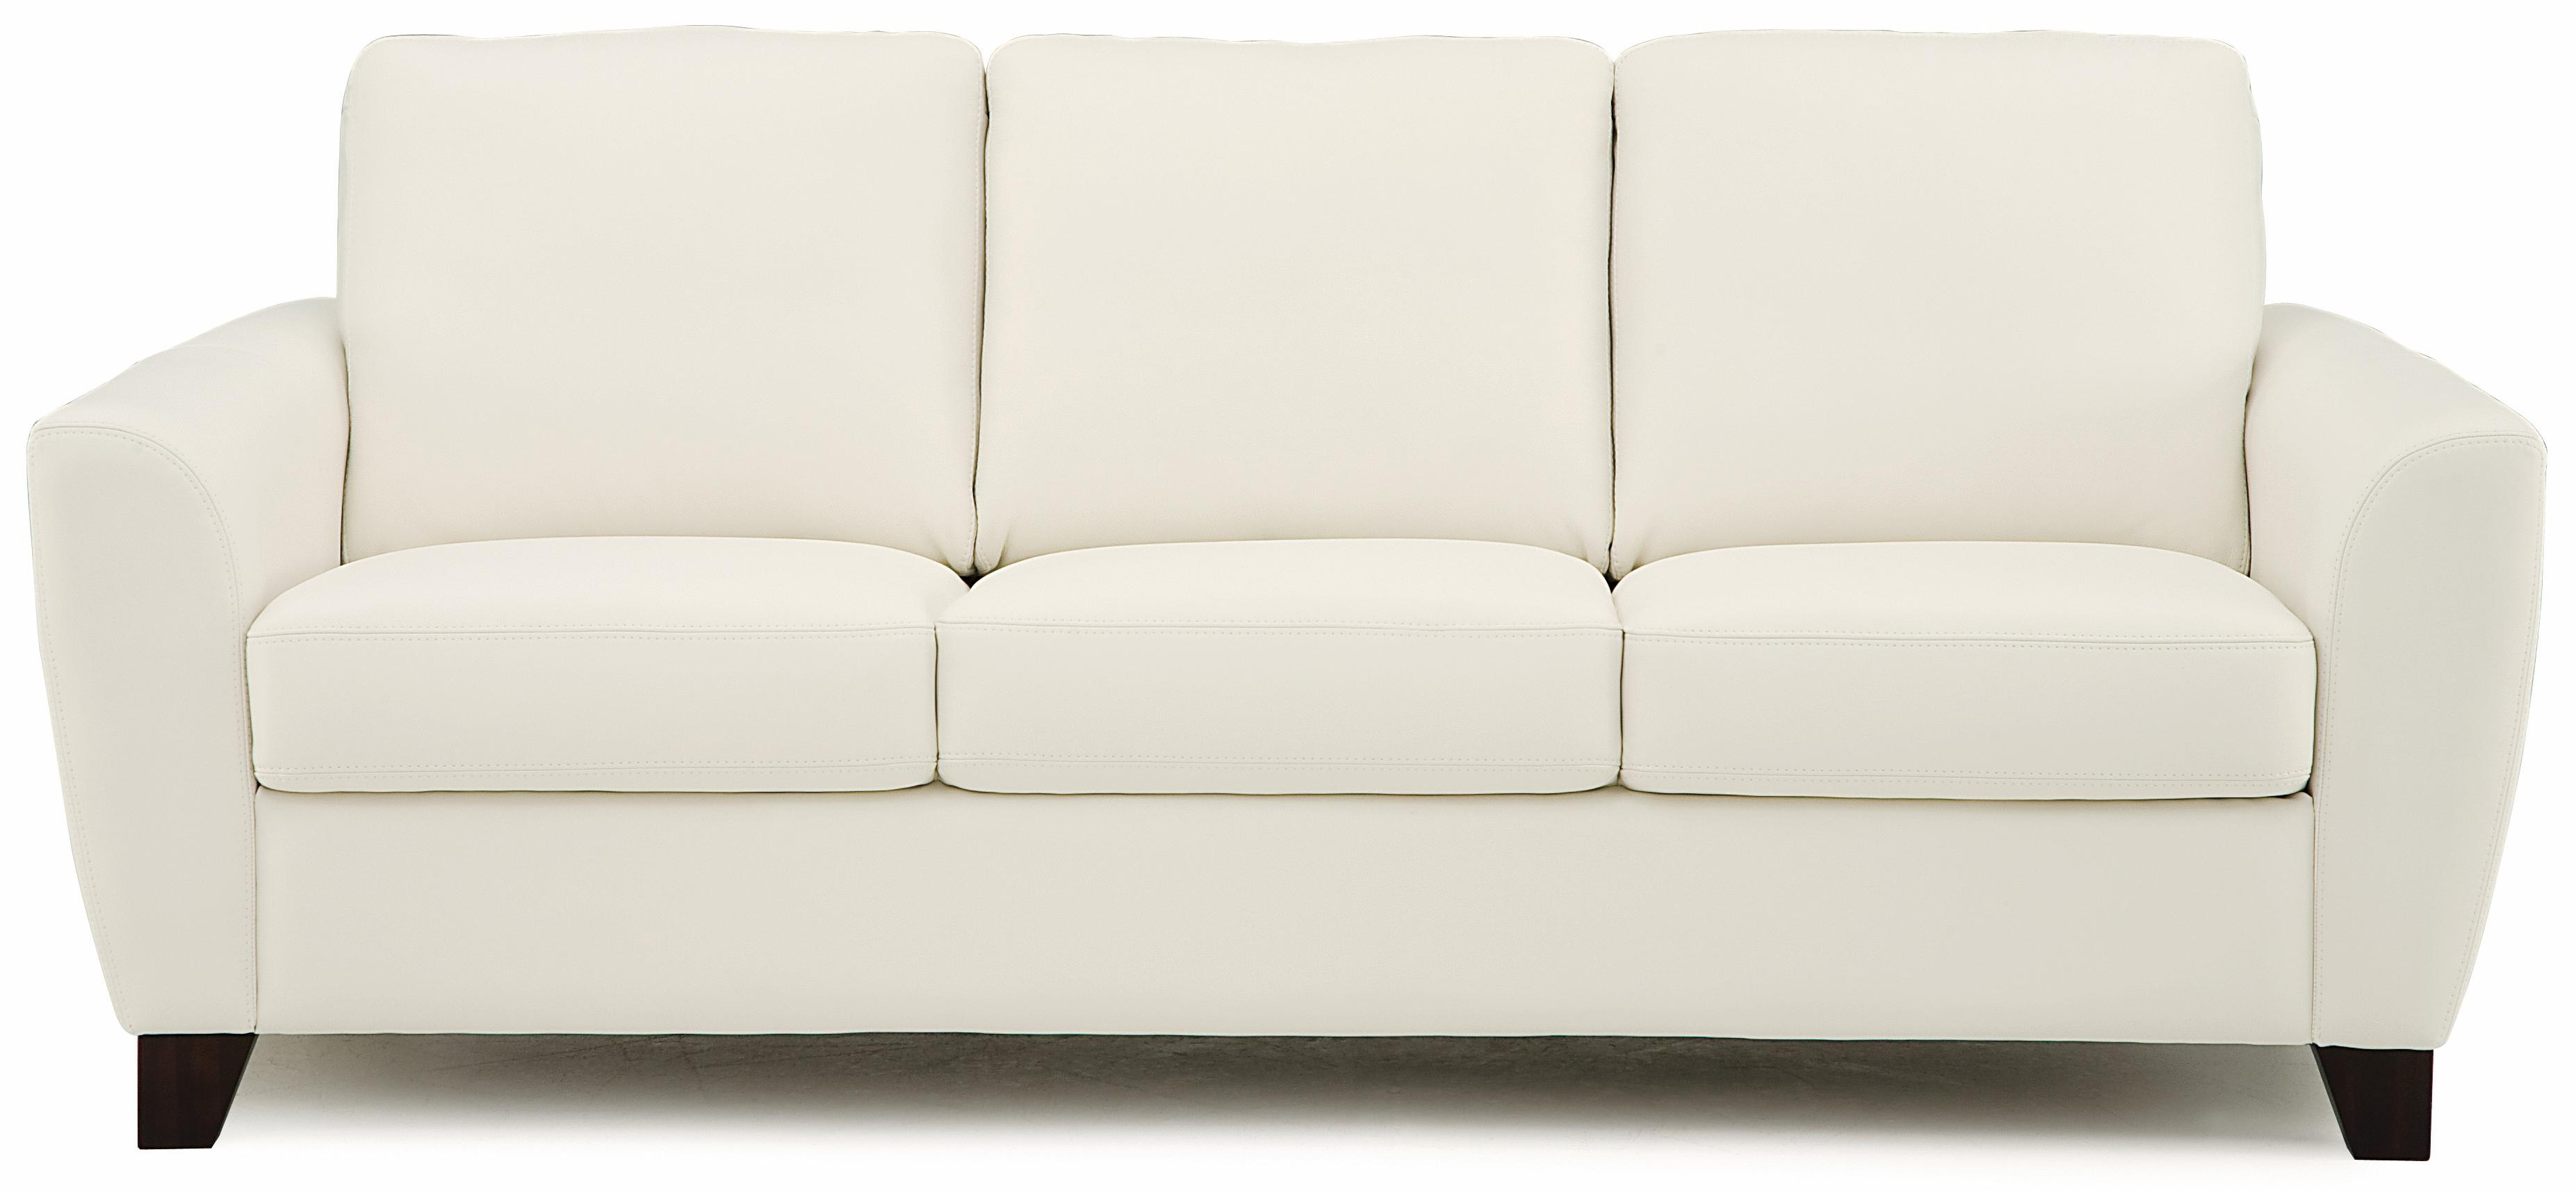 palliser stationary sofas sofa with ottoman bed marymount 77332 01 contemporary flair tapered arms by